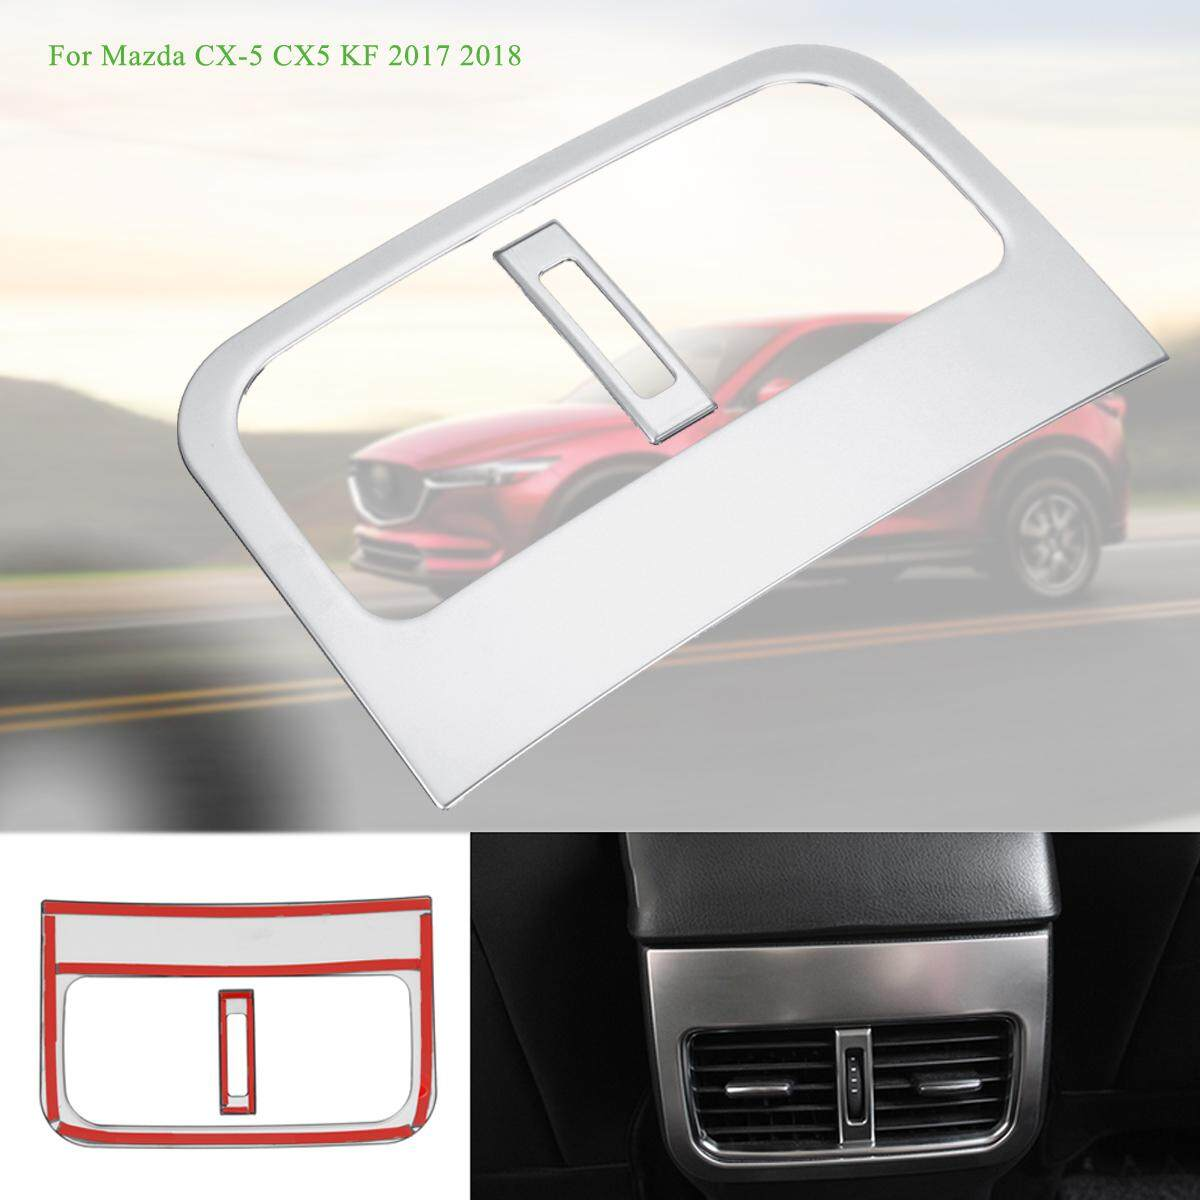 For Mazda Cx-5 Cx5 Kf 2017 2018 Car Rear Console Air Conditioner Outlet Frame Cover Silver By Audew.